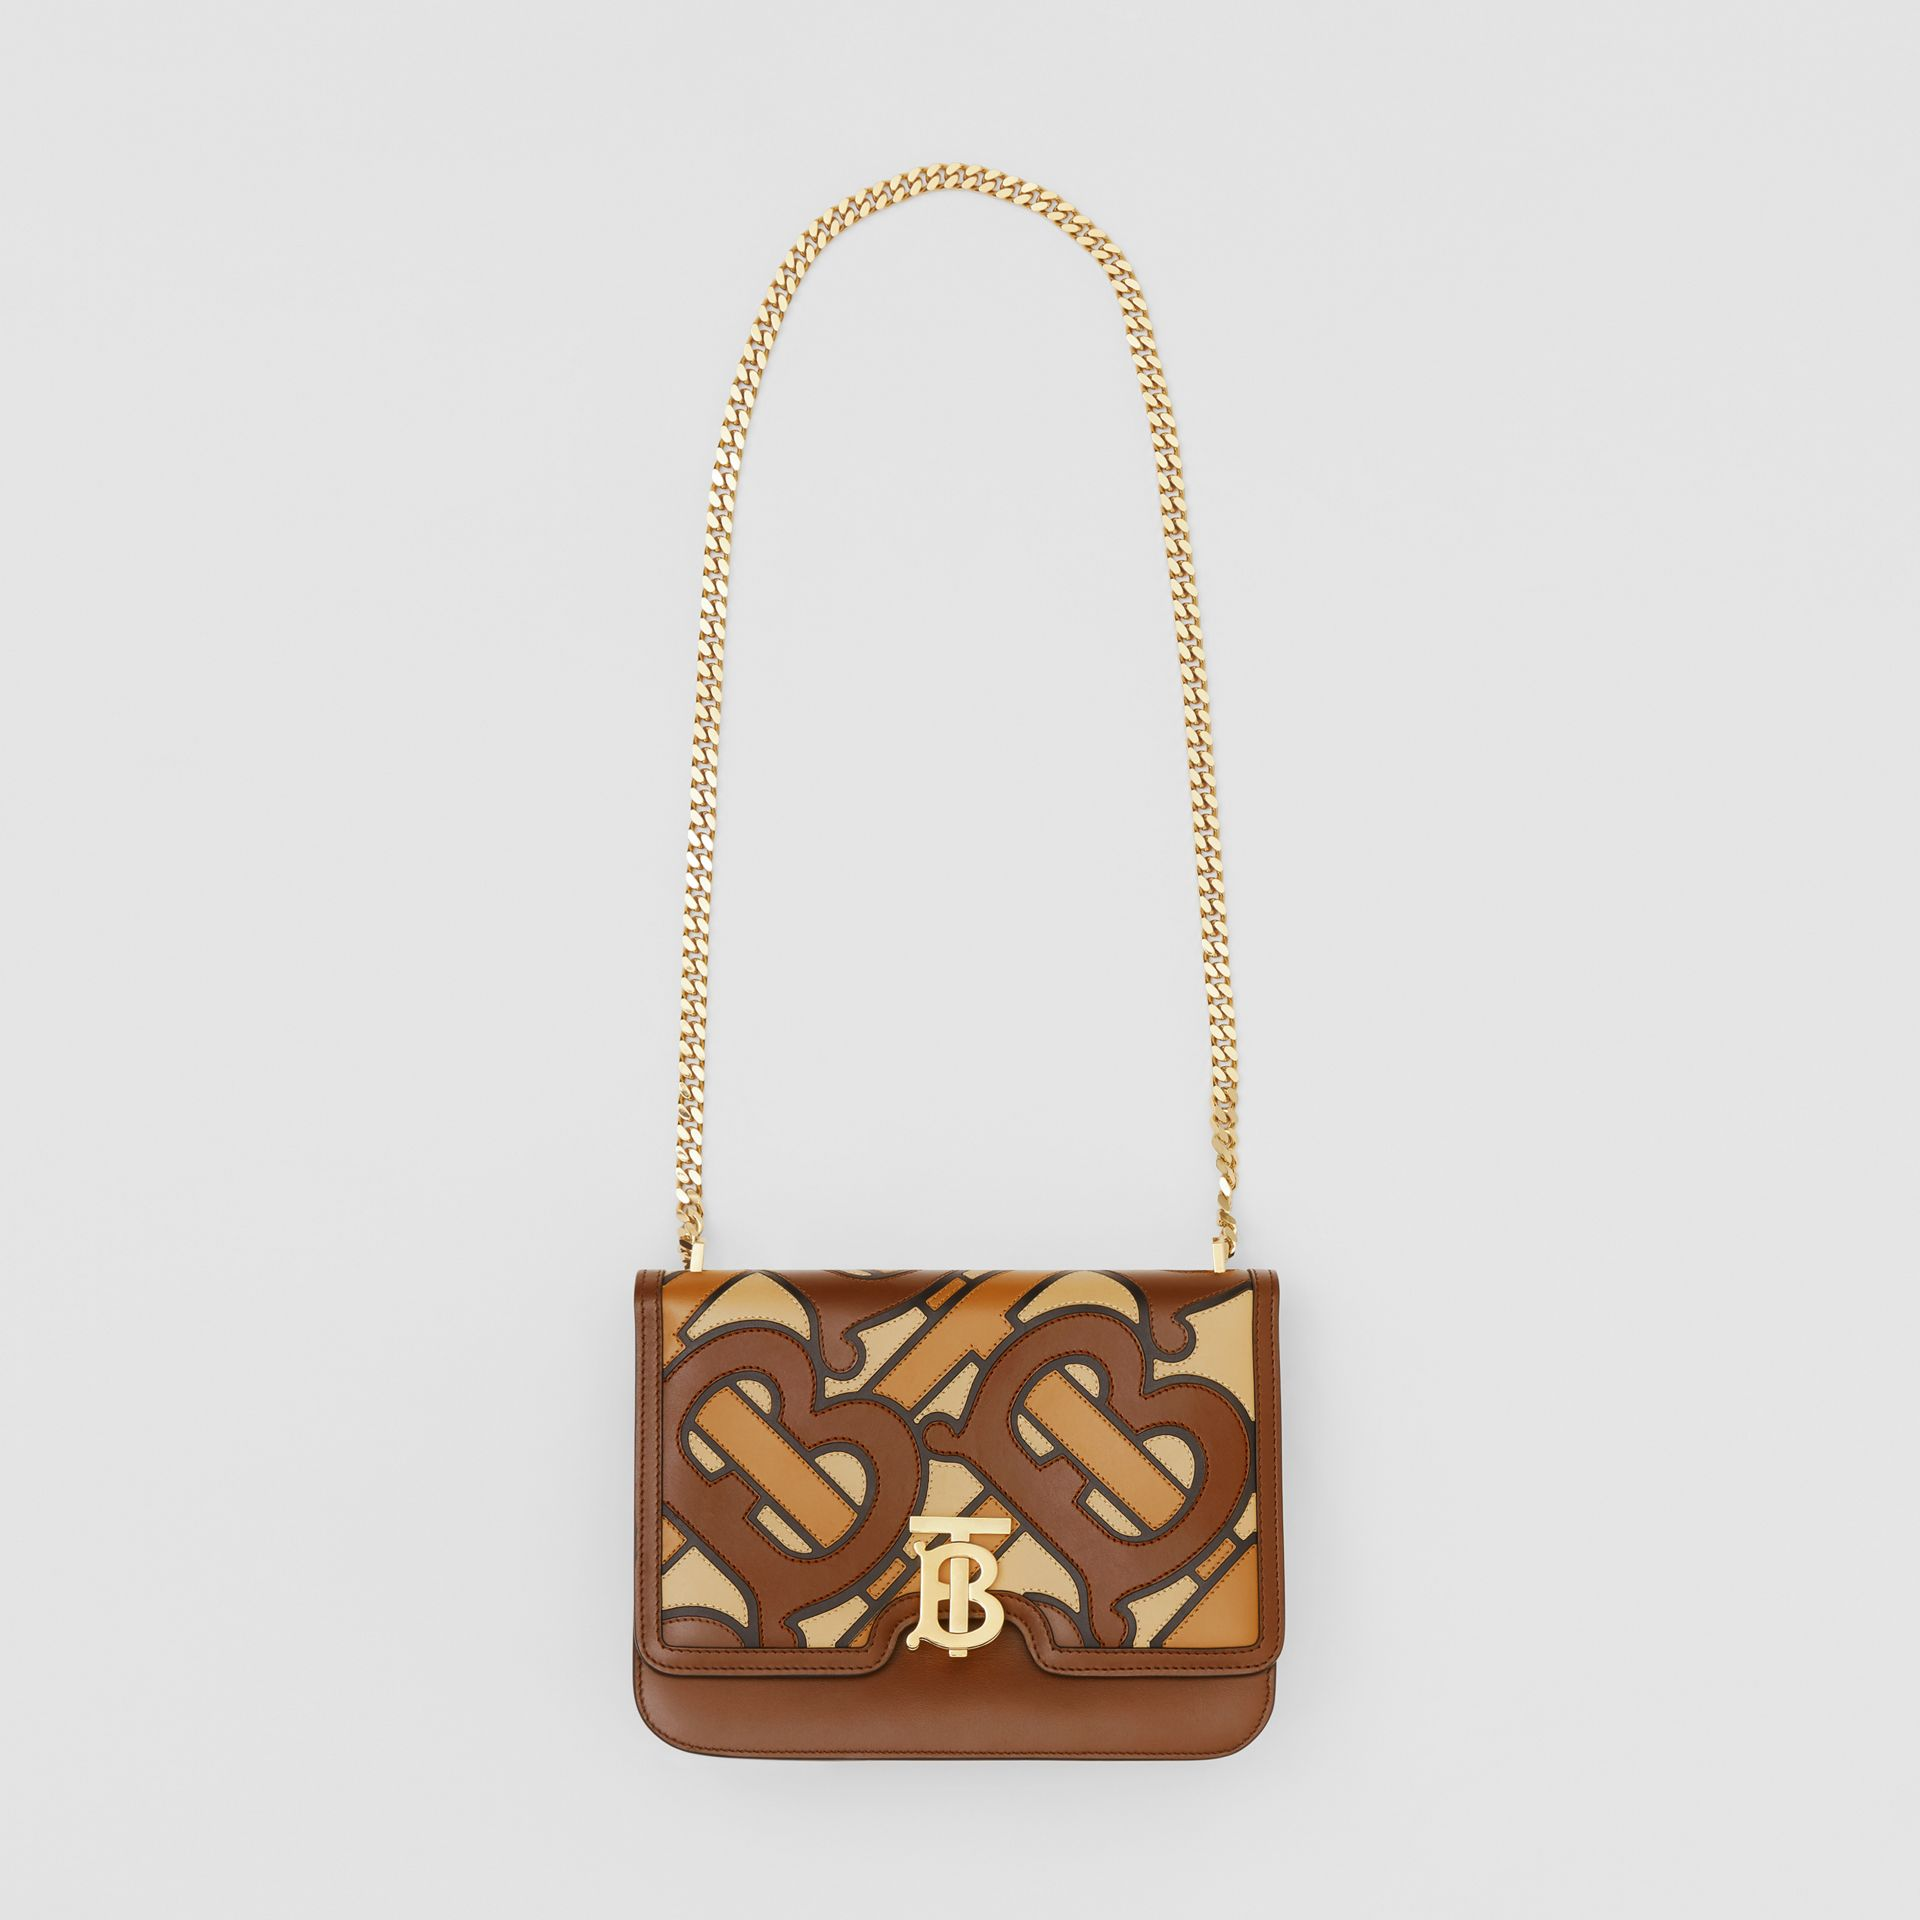 Medium Monogram Appliqué Leather TB Bag in Brown - Women | Burberry - gallery image 3